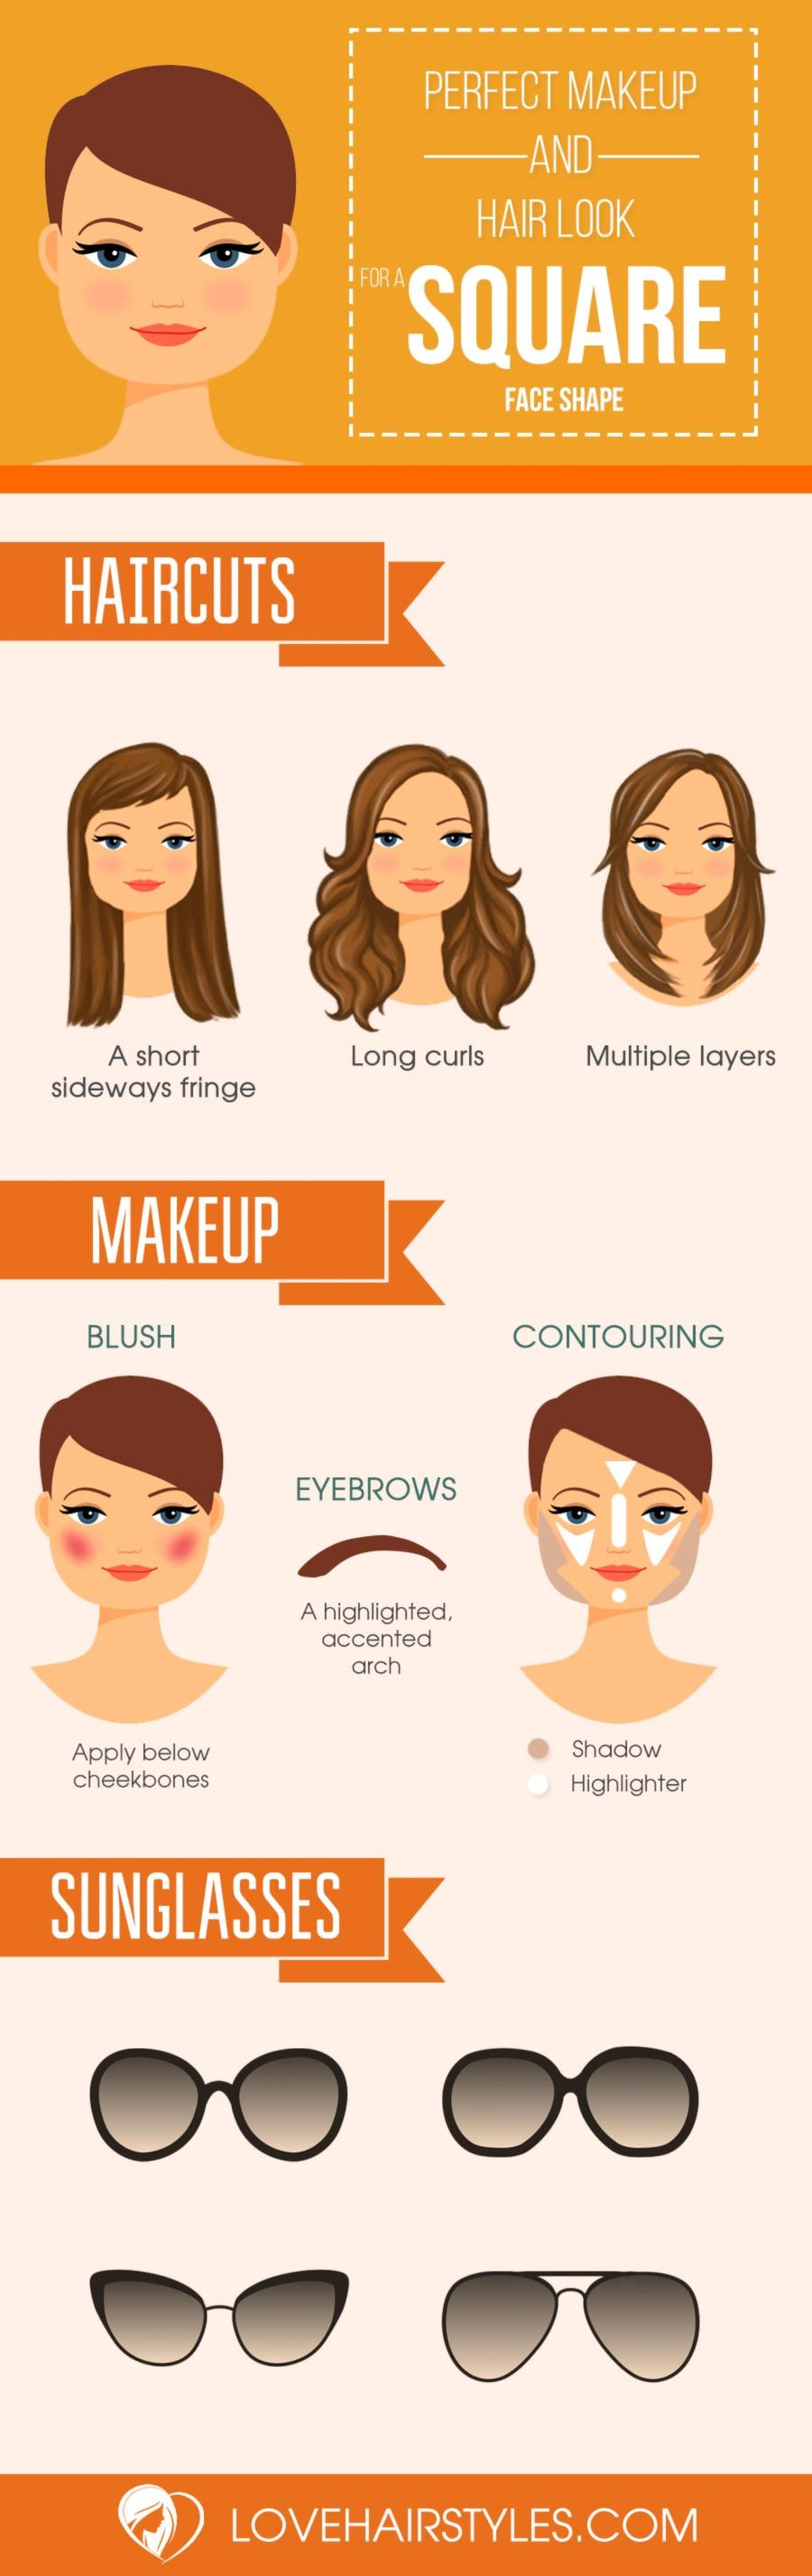 10 sexy hairstyles for square faces | makeup | pinterest | squares